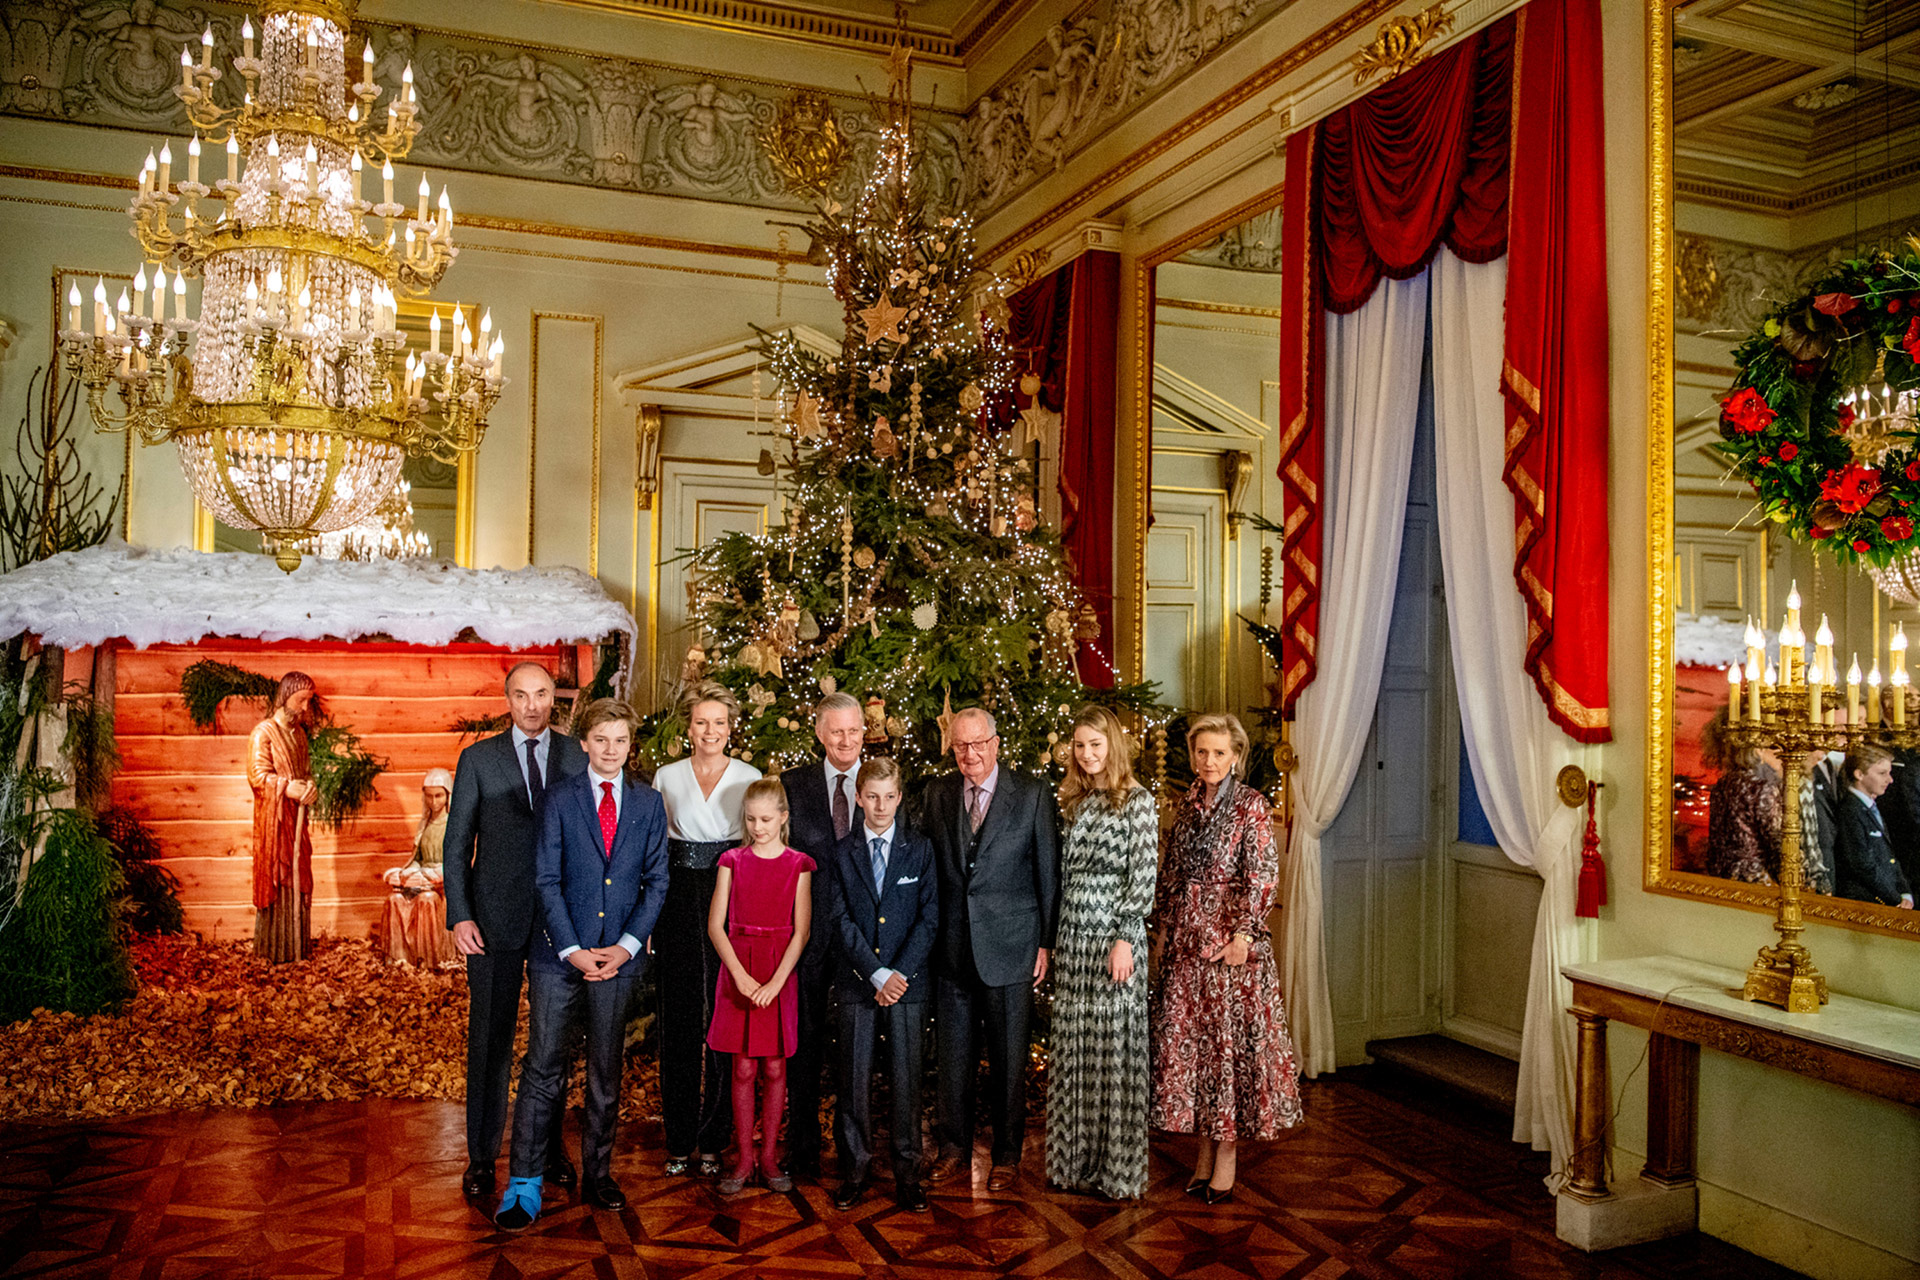 royal family standing together large christmas tree and decor